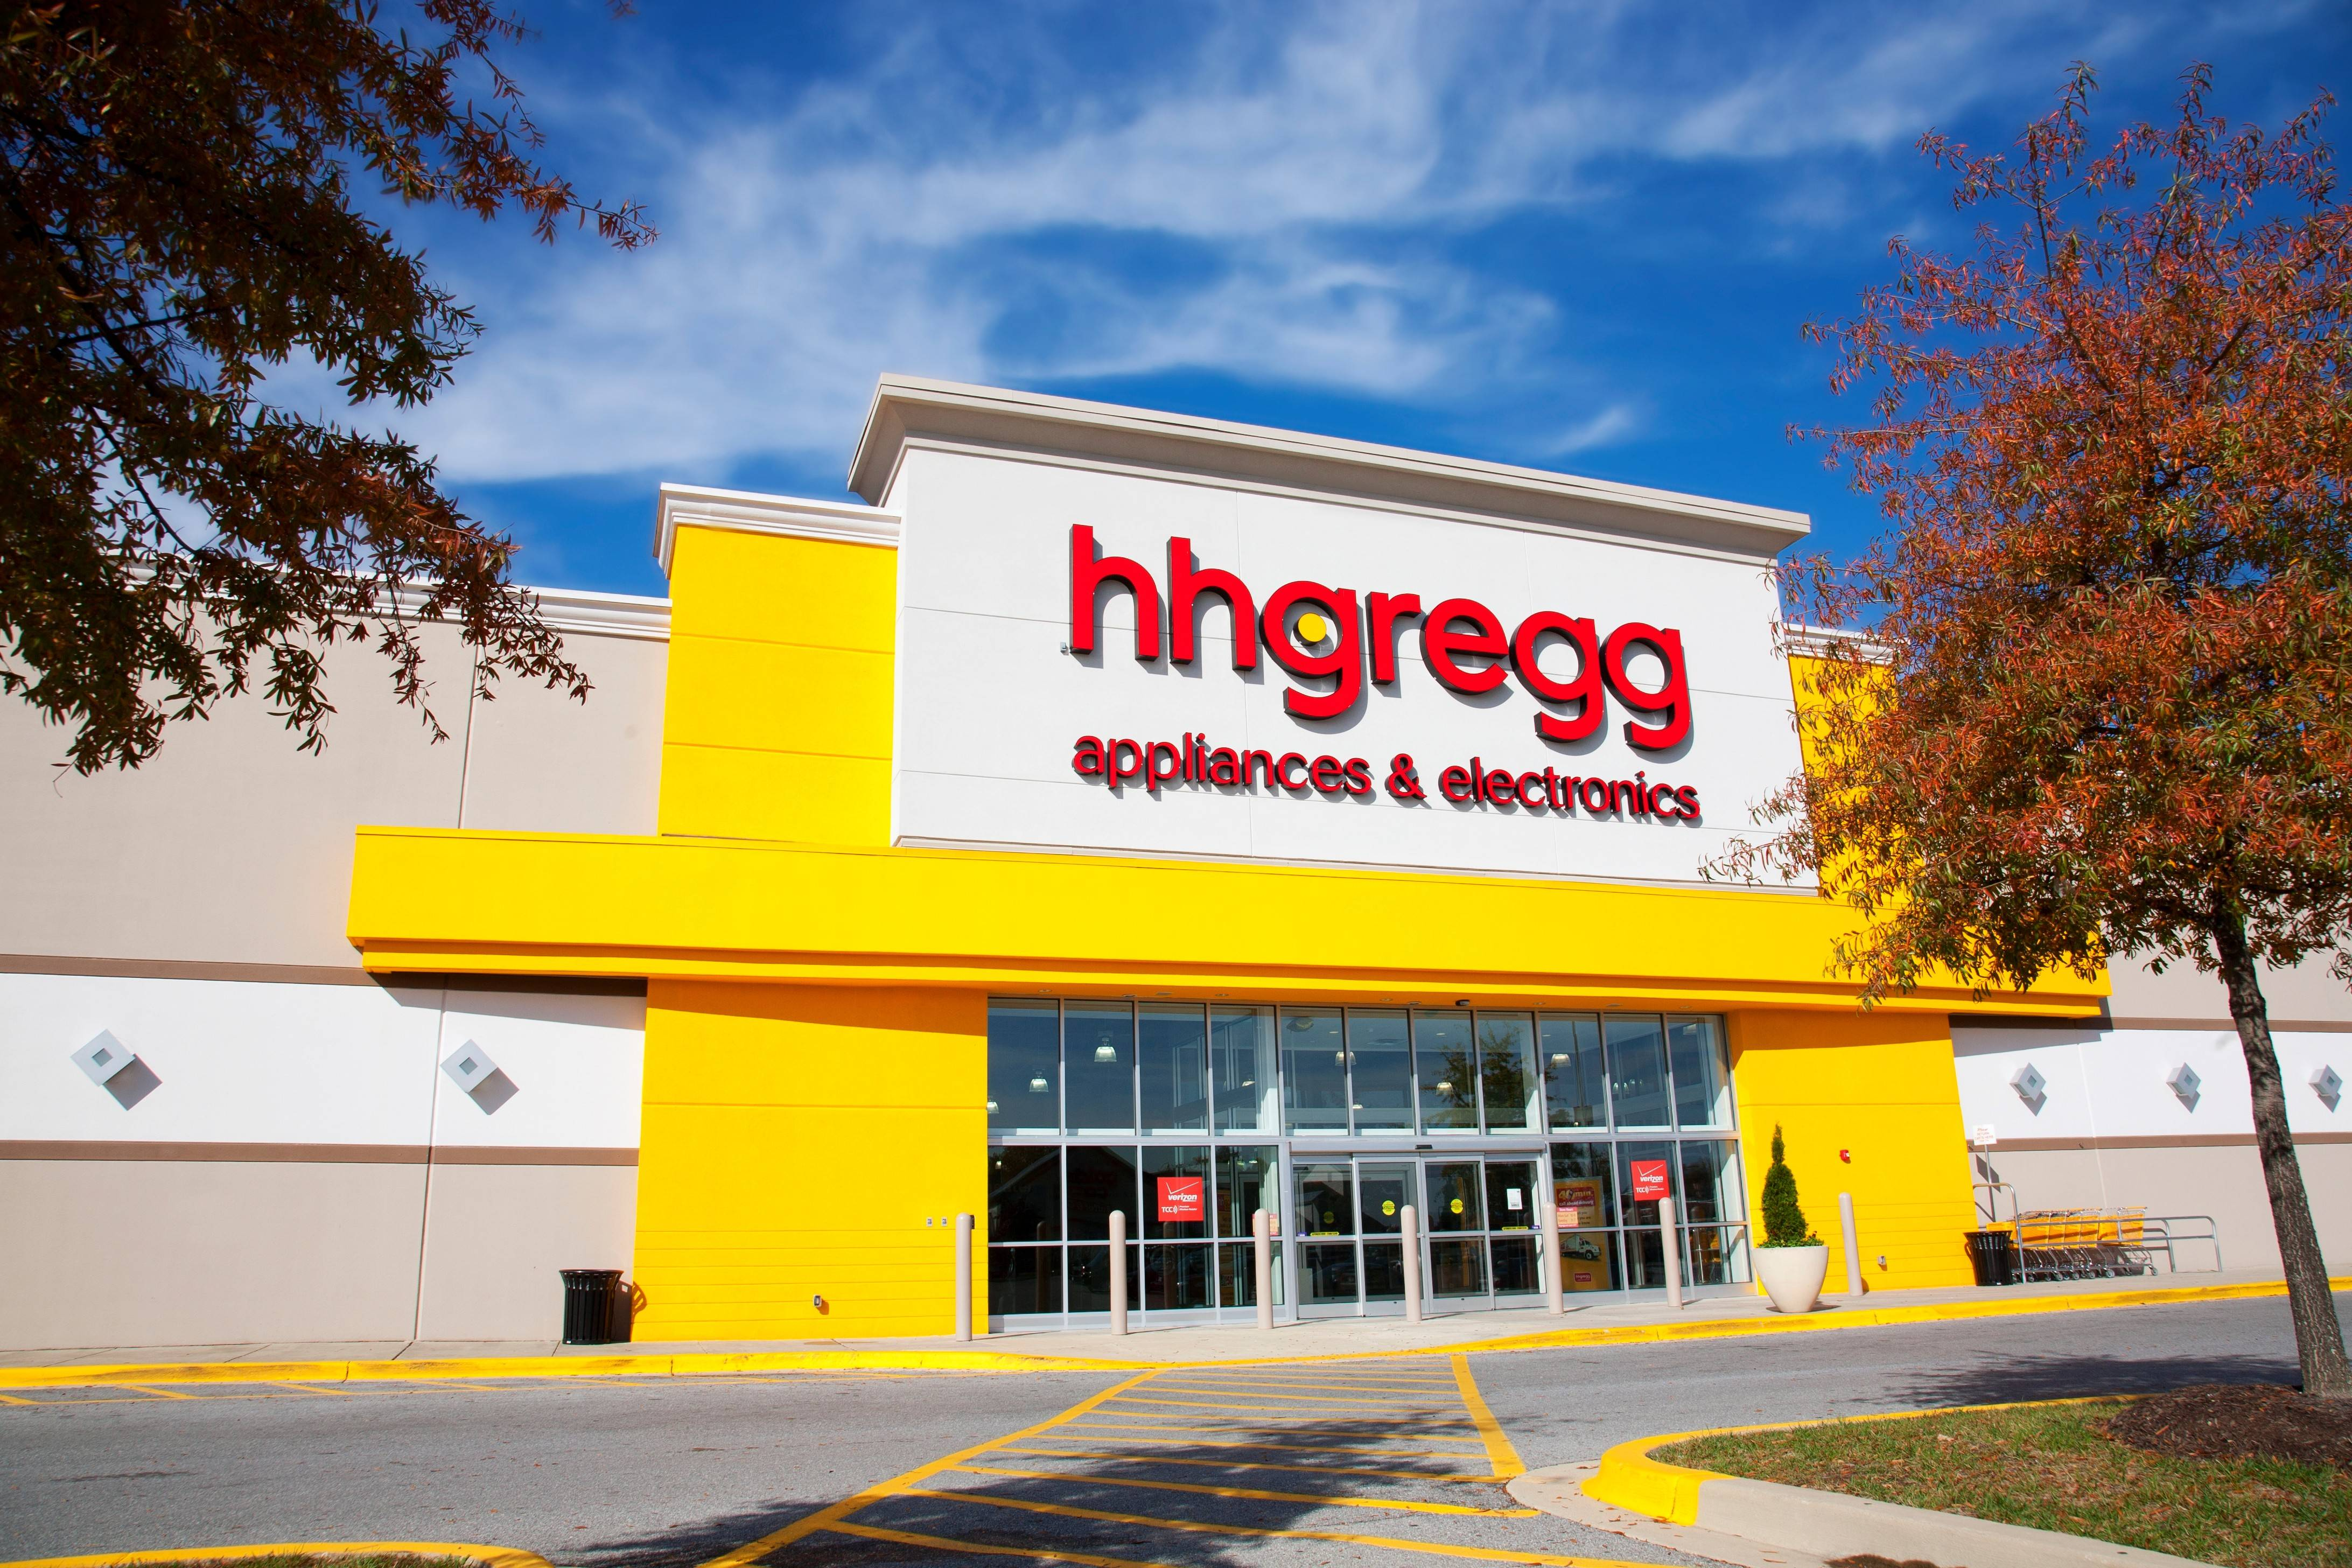 Indianapolis-based HHGregg will close 88 stores, including those in Arlington Heights, Schaumburg, Niles and Bloomingdale.